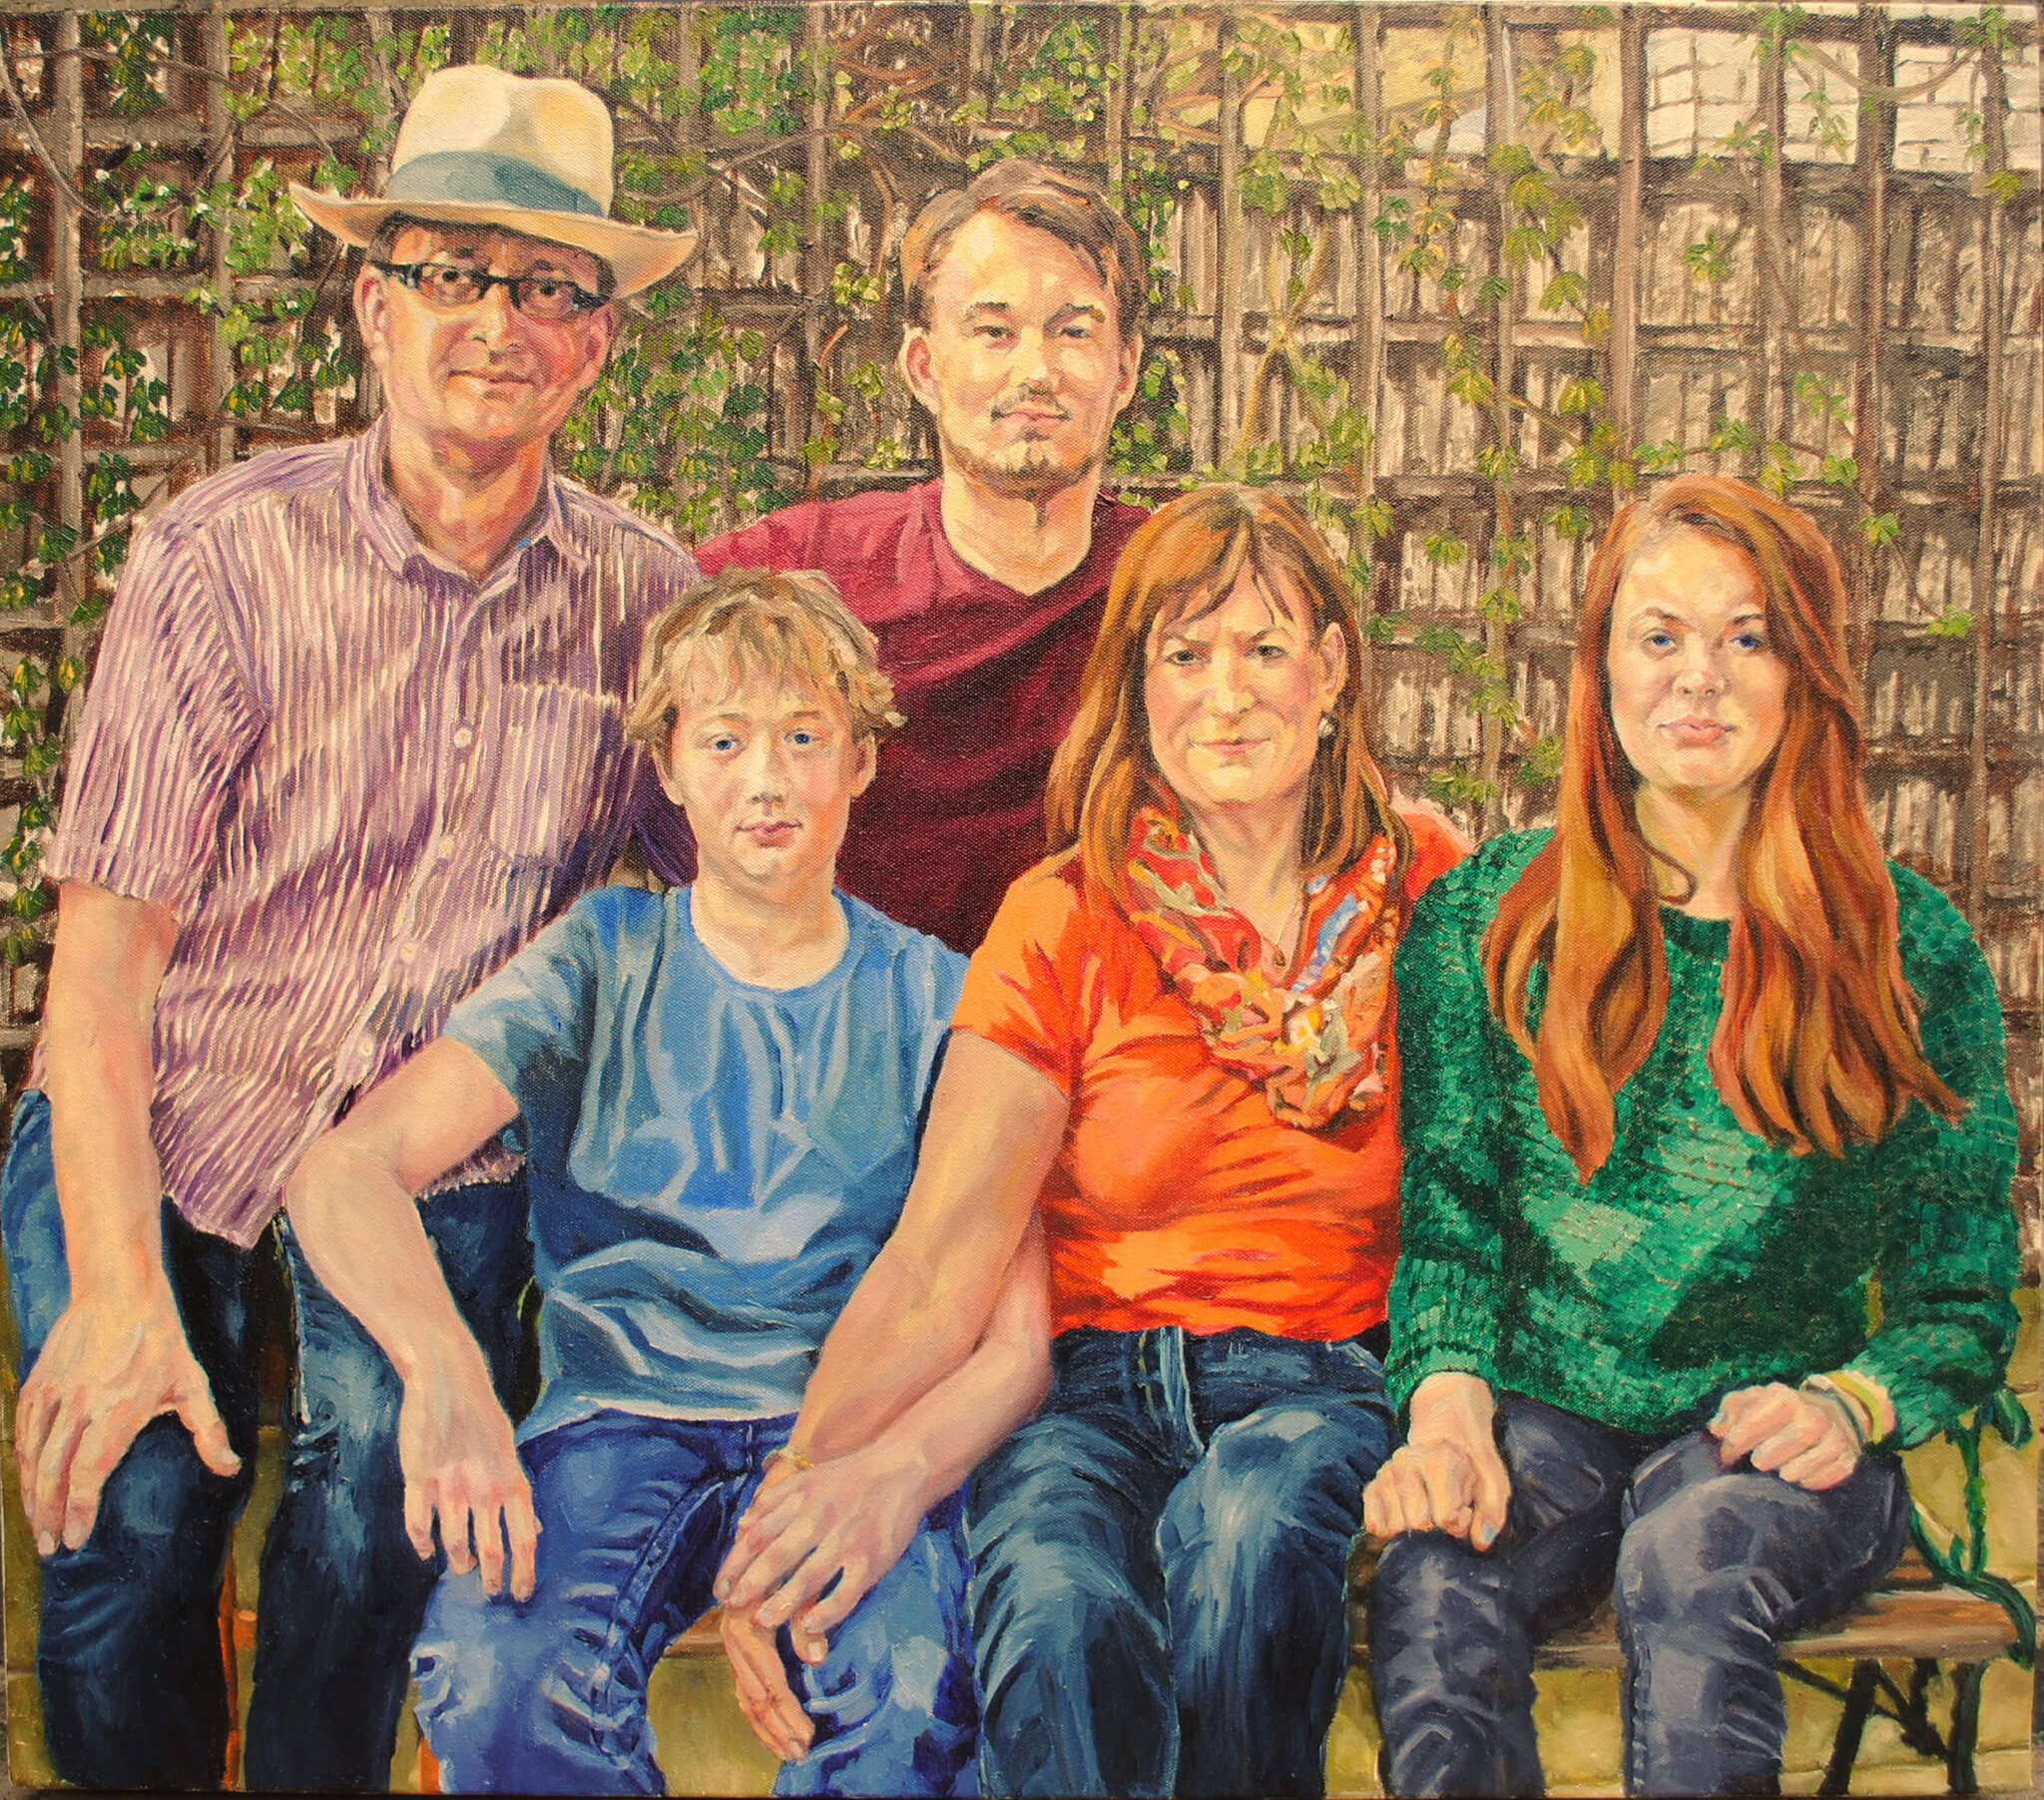 Family commissioned portrait in oils on canvas artwork by Stella Tooth.